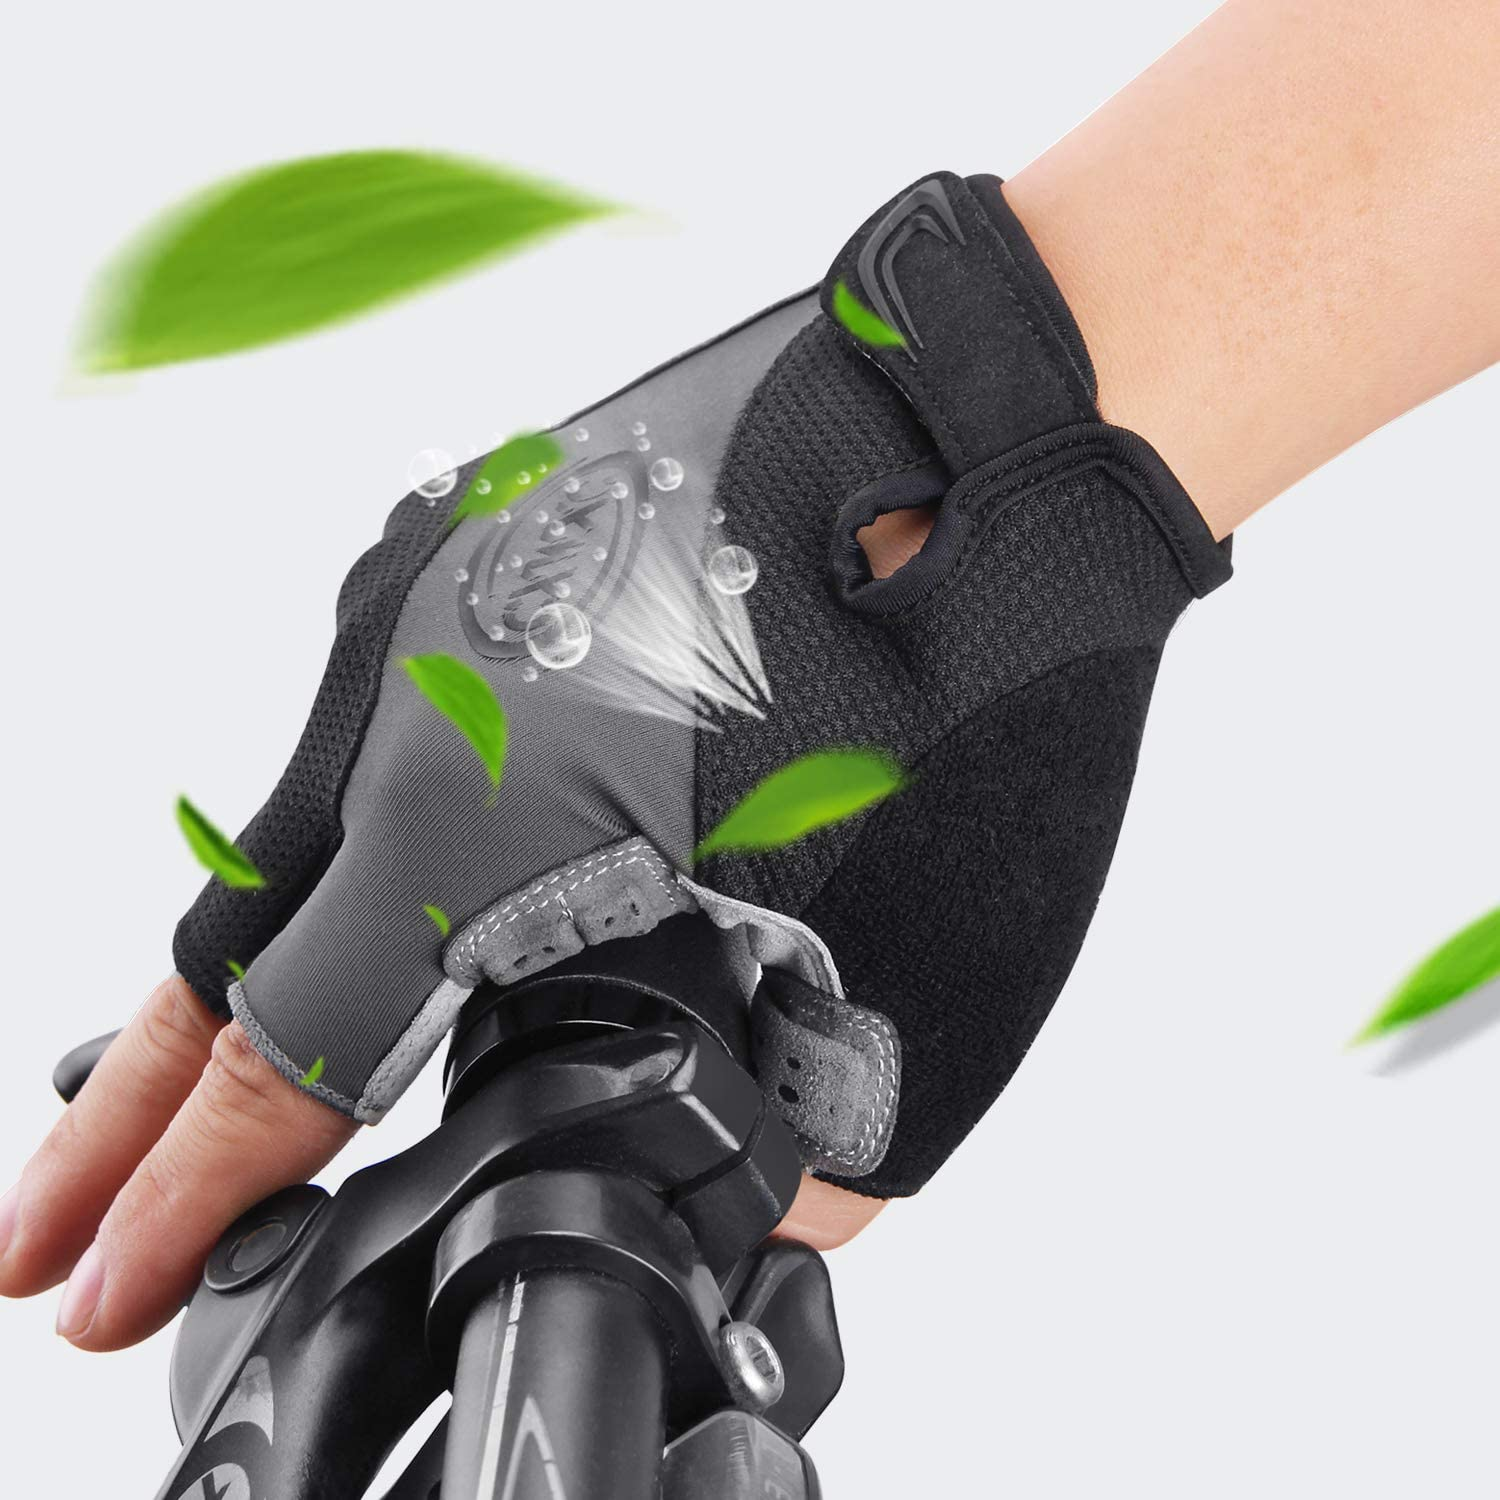 CXWXC Cycling Gloves for Men Women Anti-Slip Half Finger Glove for Fitness Cycling Training Outdoor Sports Breathable Gel Road Mountain Bike Riding Gloves